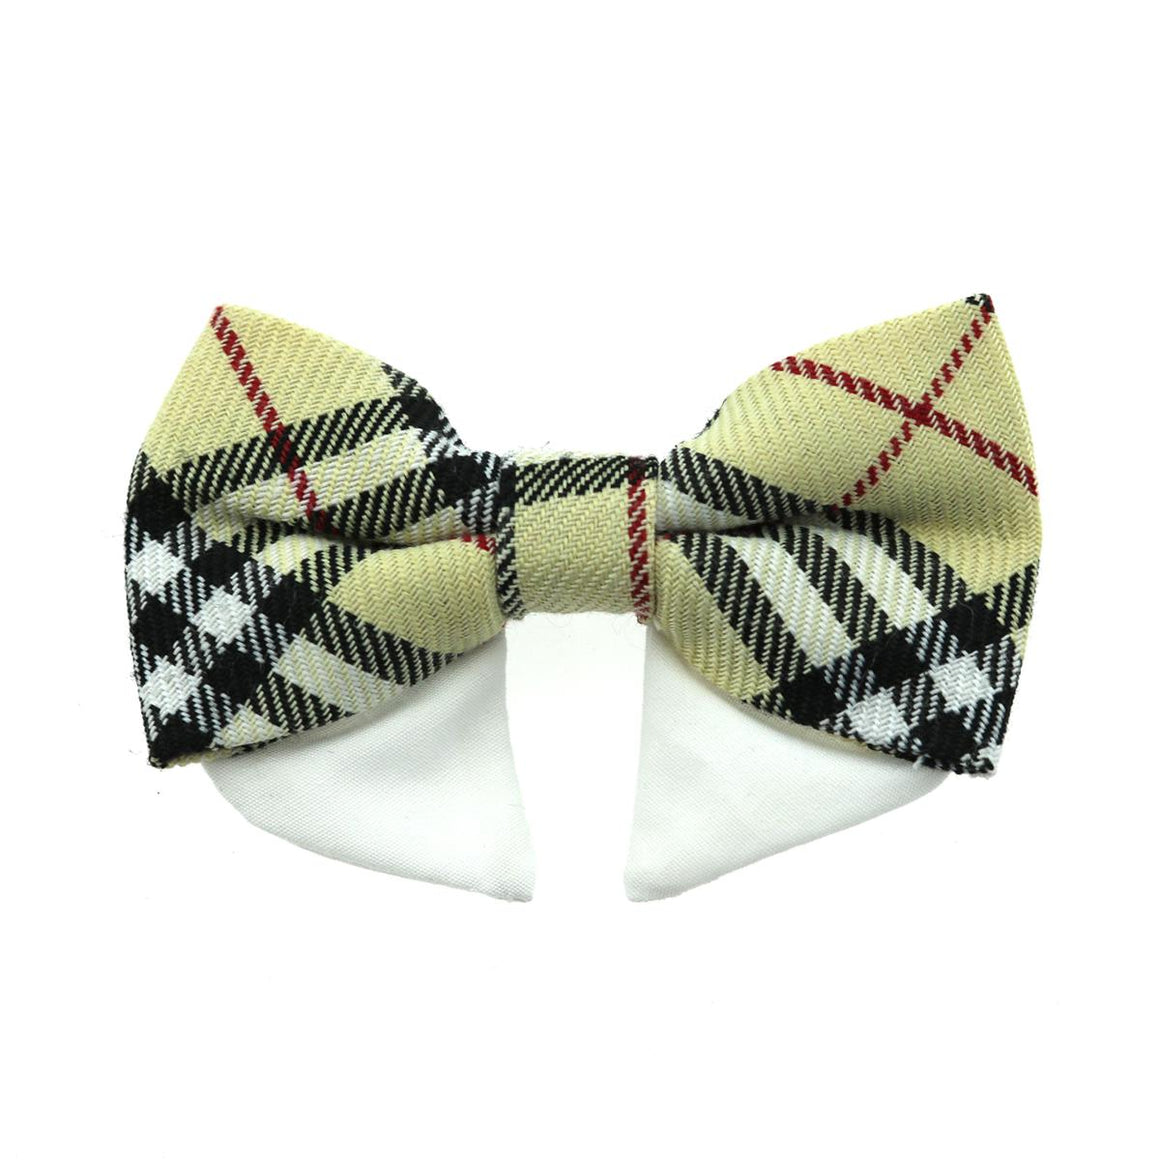 Doggie Design Universal Dog Bow Tie - Tan Plaid-Le Pup Pet Supplies and Grooming